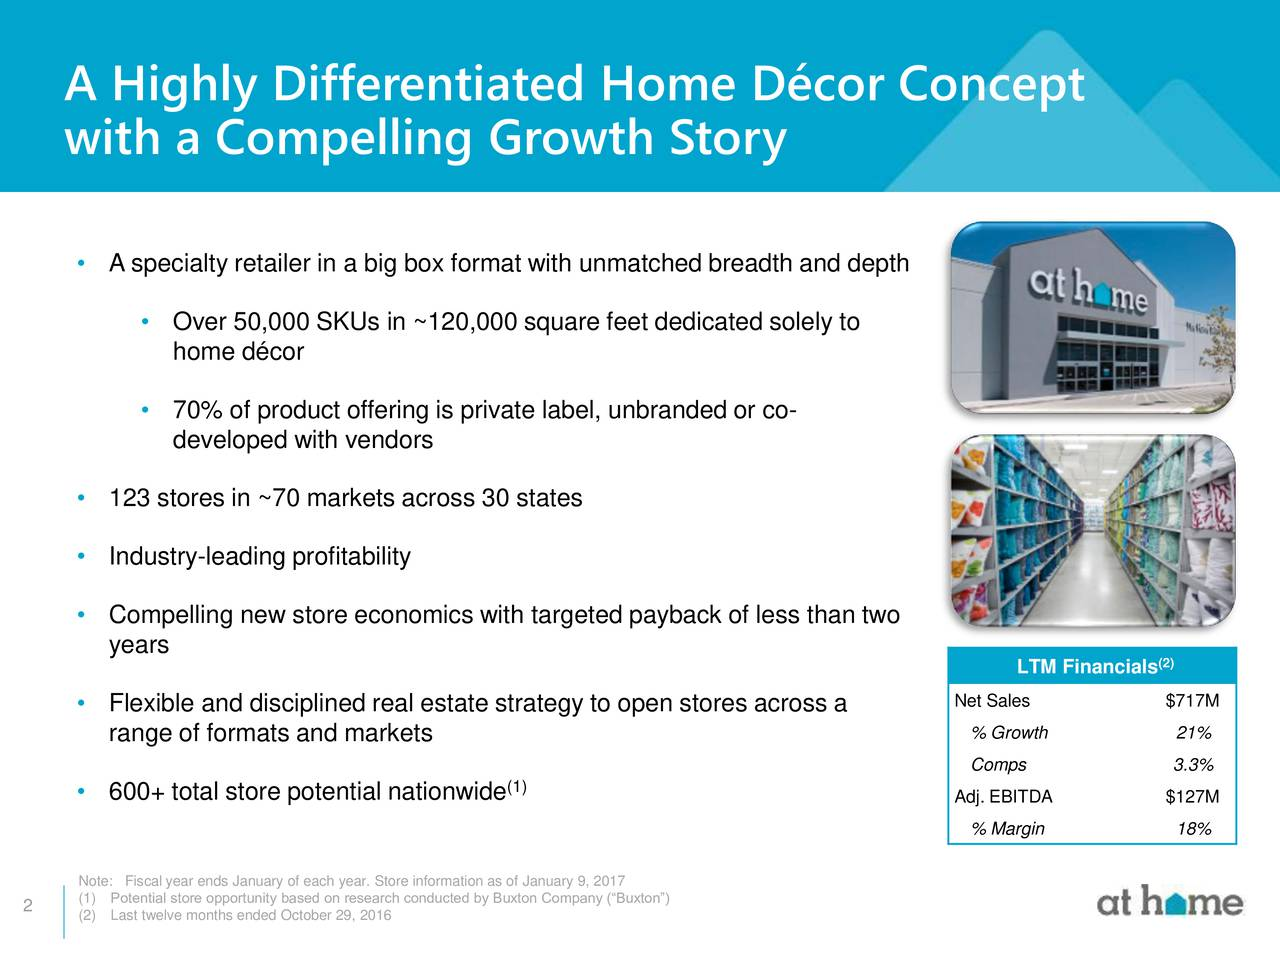 with a Compelling Growth Story A specialty retailer in a big box format with unmatched breadth and depth Over 50,000 SKUs in ~120,000 square feet dedicated solely to home dcor 70% of product offering is private label, unbranded or co- developed with vendors 123 stores in ~70 markets across 30 states Industry-leading profitability Compelling new store economics with targeted payback of less than two years (2) LTM Financials Flexible and disciplined real estate strategy to open stores across a Net Sales $717M range of formats and markets % Growth 21% Comps 3.3% 600+ total store potential nationwide (1) Adj. EBITDA $127M % Margin 18% (1)ePotential store opportunity based on research conducted by Buxton Company (Buxton) 2 (2) Last twelve months ended October 29, 2016